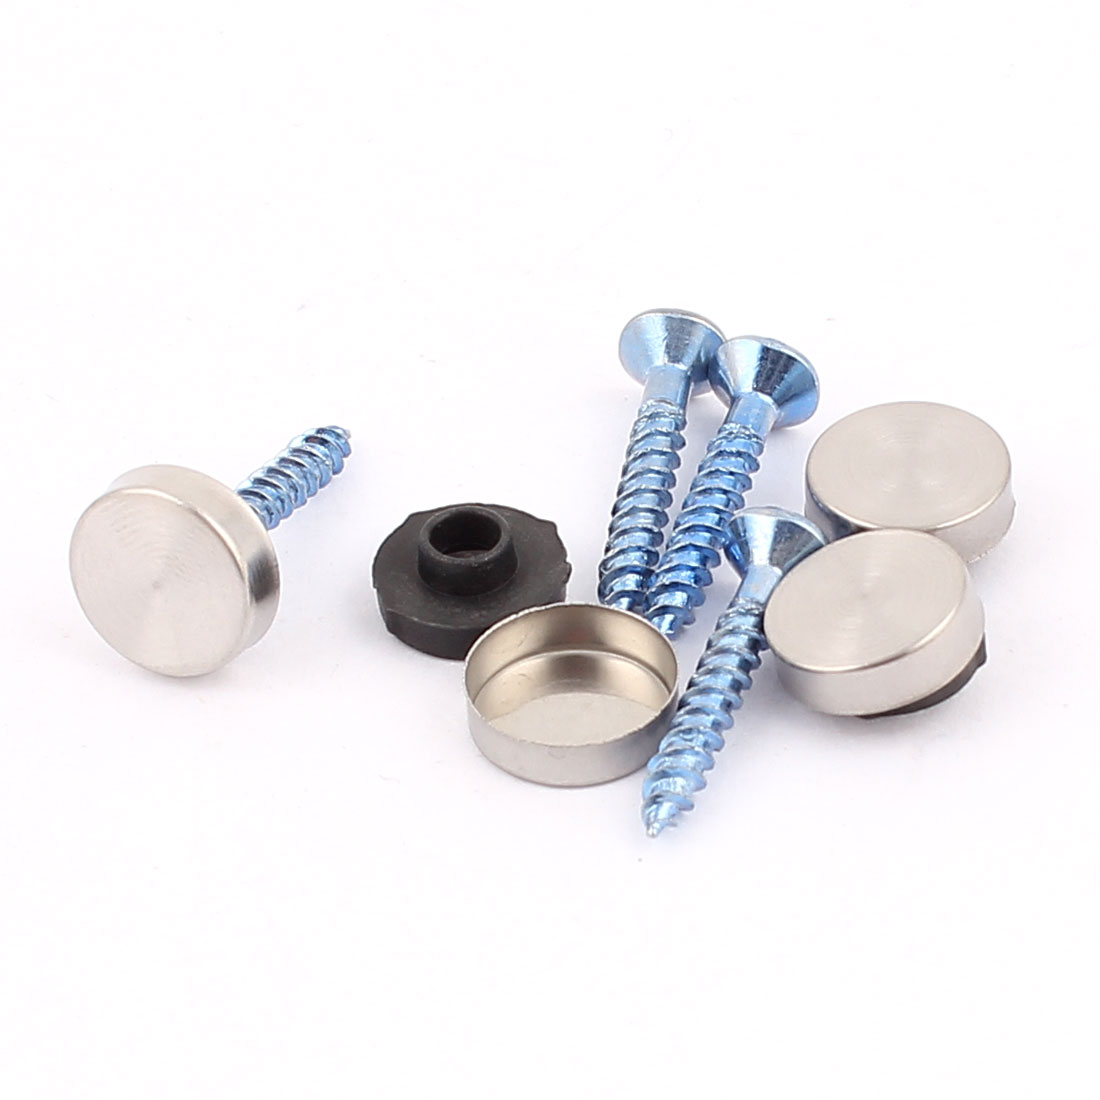 4 Pcs Anti-rust Fixed Mirror Nail Pad Decorative Fasteners Billboard Studded 12mm Diameter